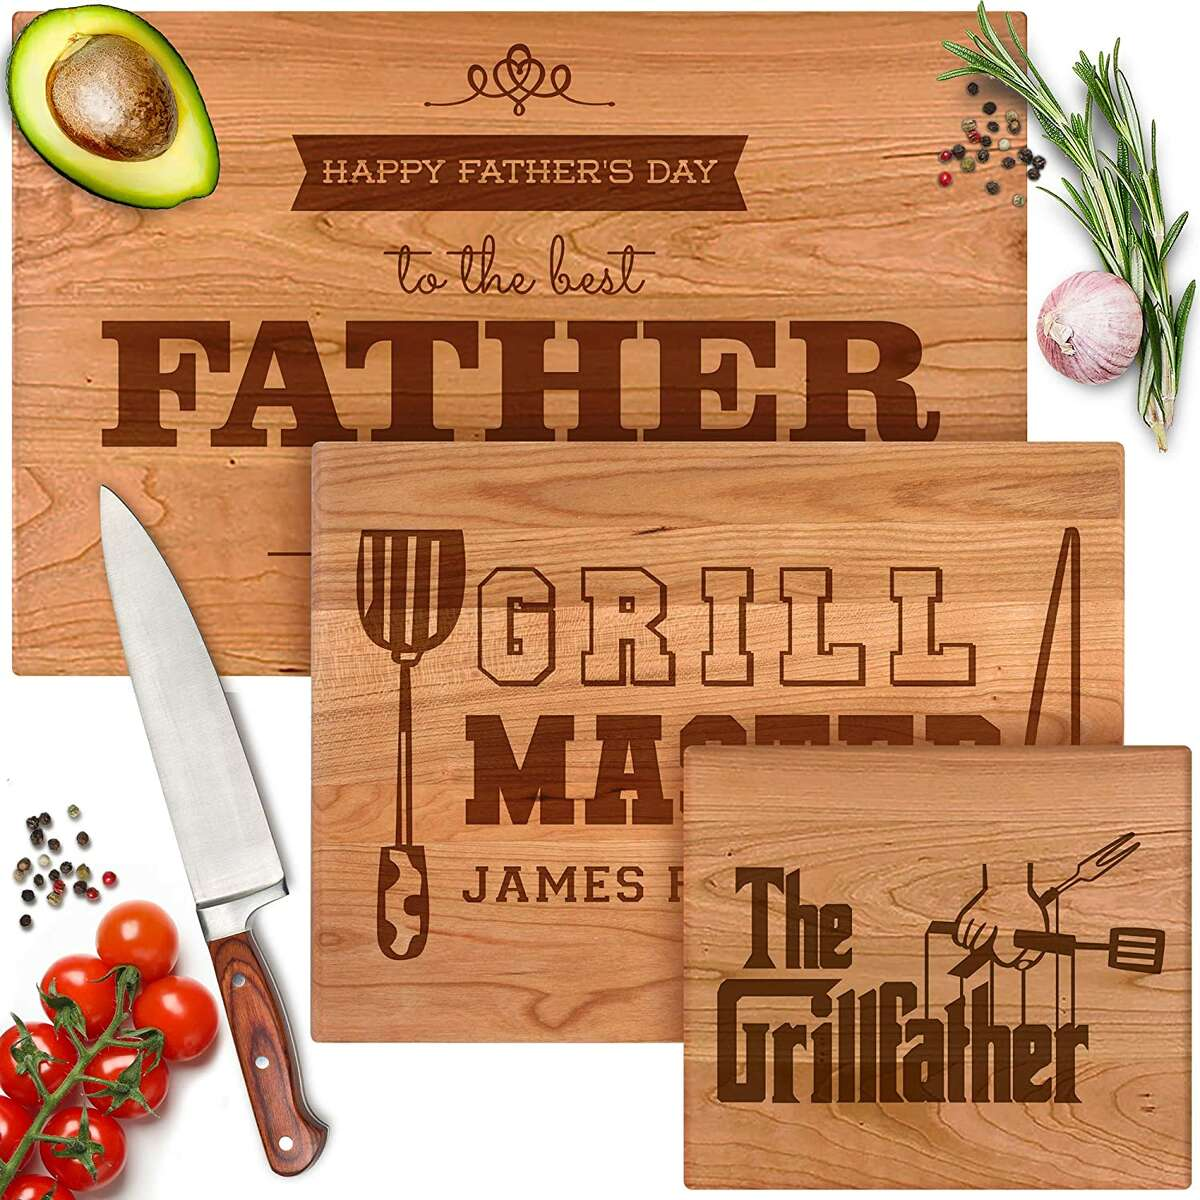 For $29.99, you can personalize a cutting board on Amazon for your favorite grill master.